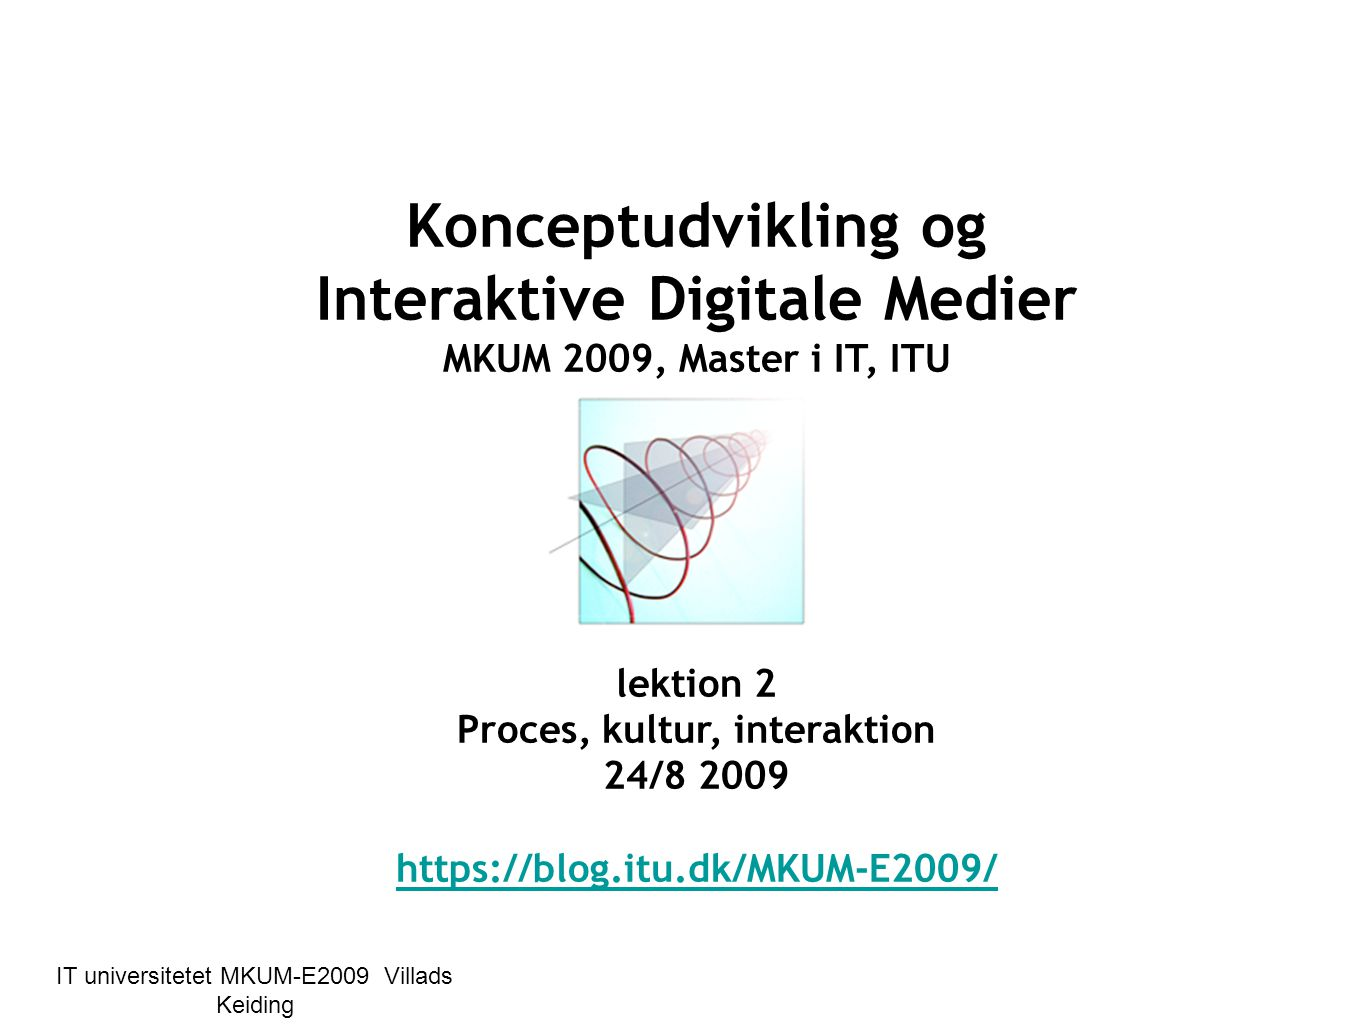 © bedre læring på kortere tid IT universitetet MKUM-E2009 Villads Keiding Konceptudvikling og Interaktive Digitale Medier MKUM 2009, Master i IT, ITU MKUM lektion 2 Proces, kultur, interaktion 24/8 2009 https://blog.itu.dk/MKUM-E2009/